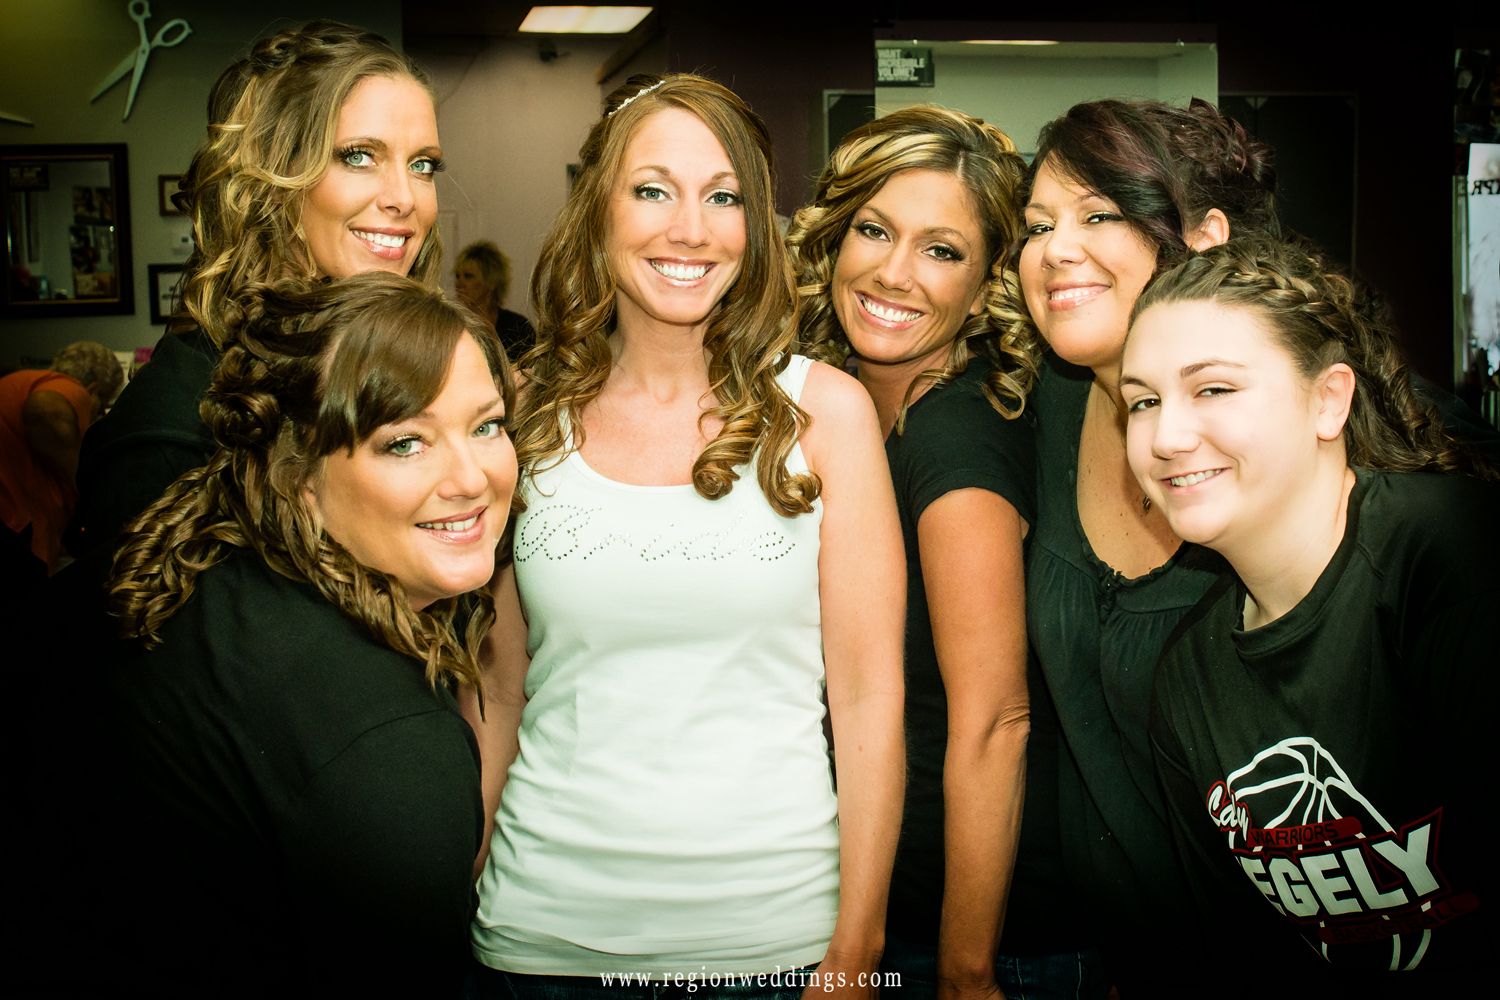 Bridesmaids gather around the bride for a group hug on her big day.